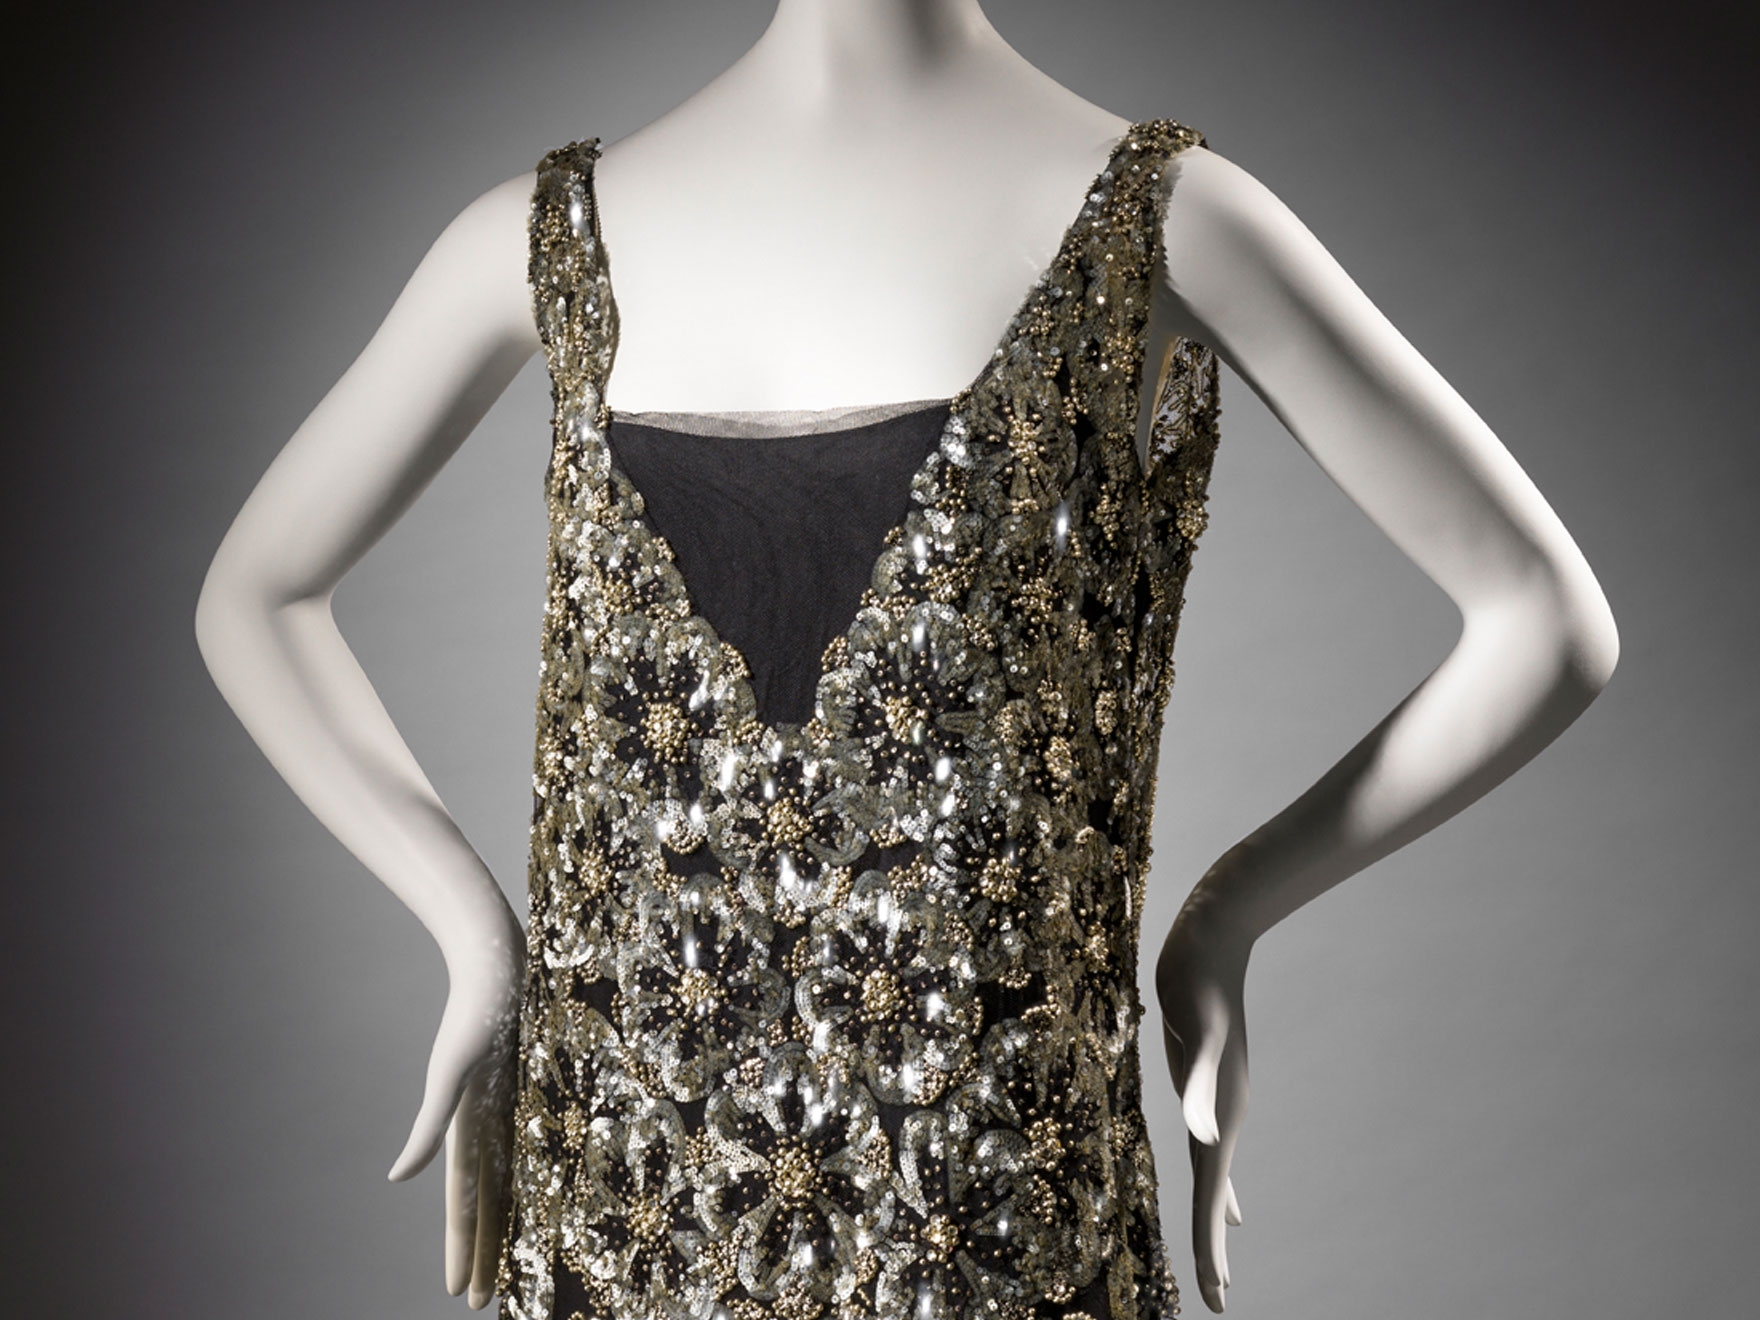 Silk, embroidered and sequined netting dress over a silk lining, designed by Chanel and worn by Ina ClaireLining; plain weave w/crepe yarns in the warp direction.